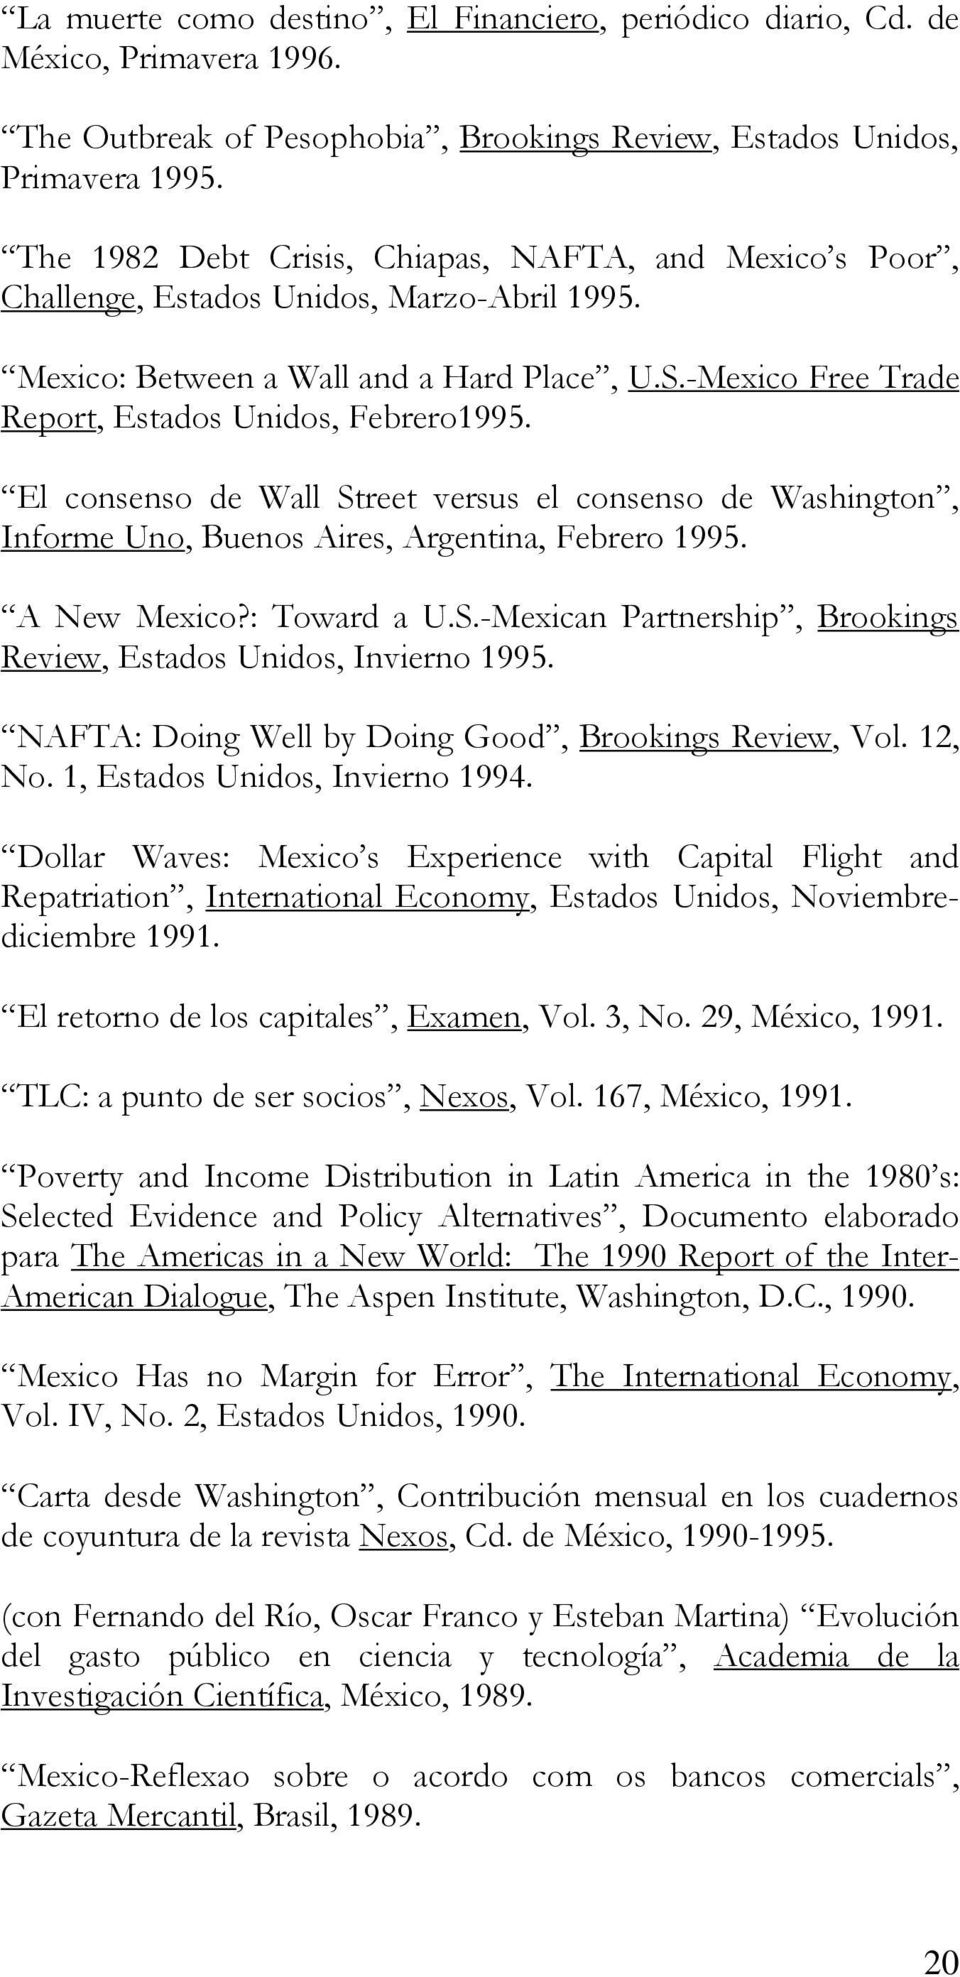 -Mexico Free Trade Report, Estados Unidos, Febrero1995. El consenso de Wall Street versus el consenso de Washington, Informe Uno, Buenos Aires, Argentina, Febrero 1995. A New Mexico?: Toward a U.S.-Mexican Partnership, Brookings Review, Estados Unidos, Invierno 1995.